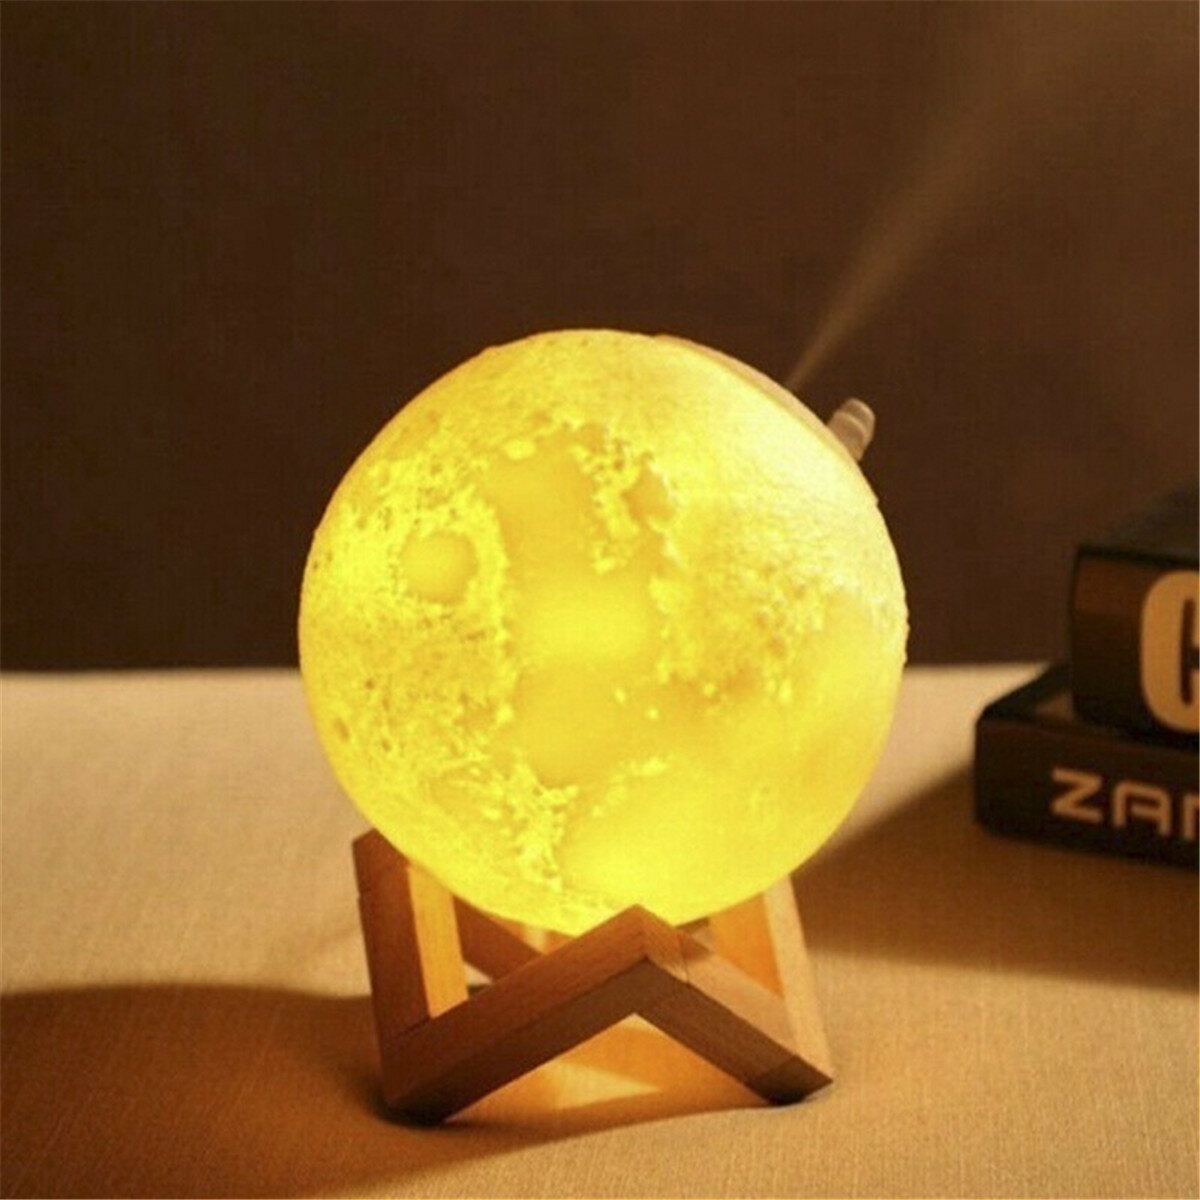 880ML 3D LED Night Light Air Humidifier Moon Lamp Aroma Essential Oil Diffuser - 6